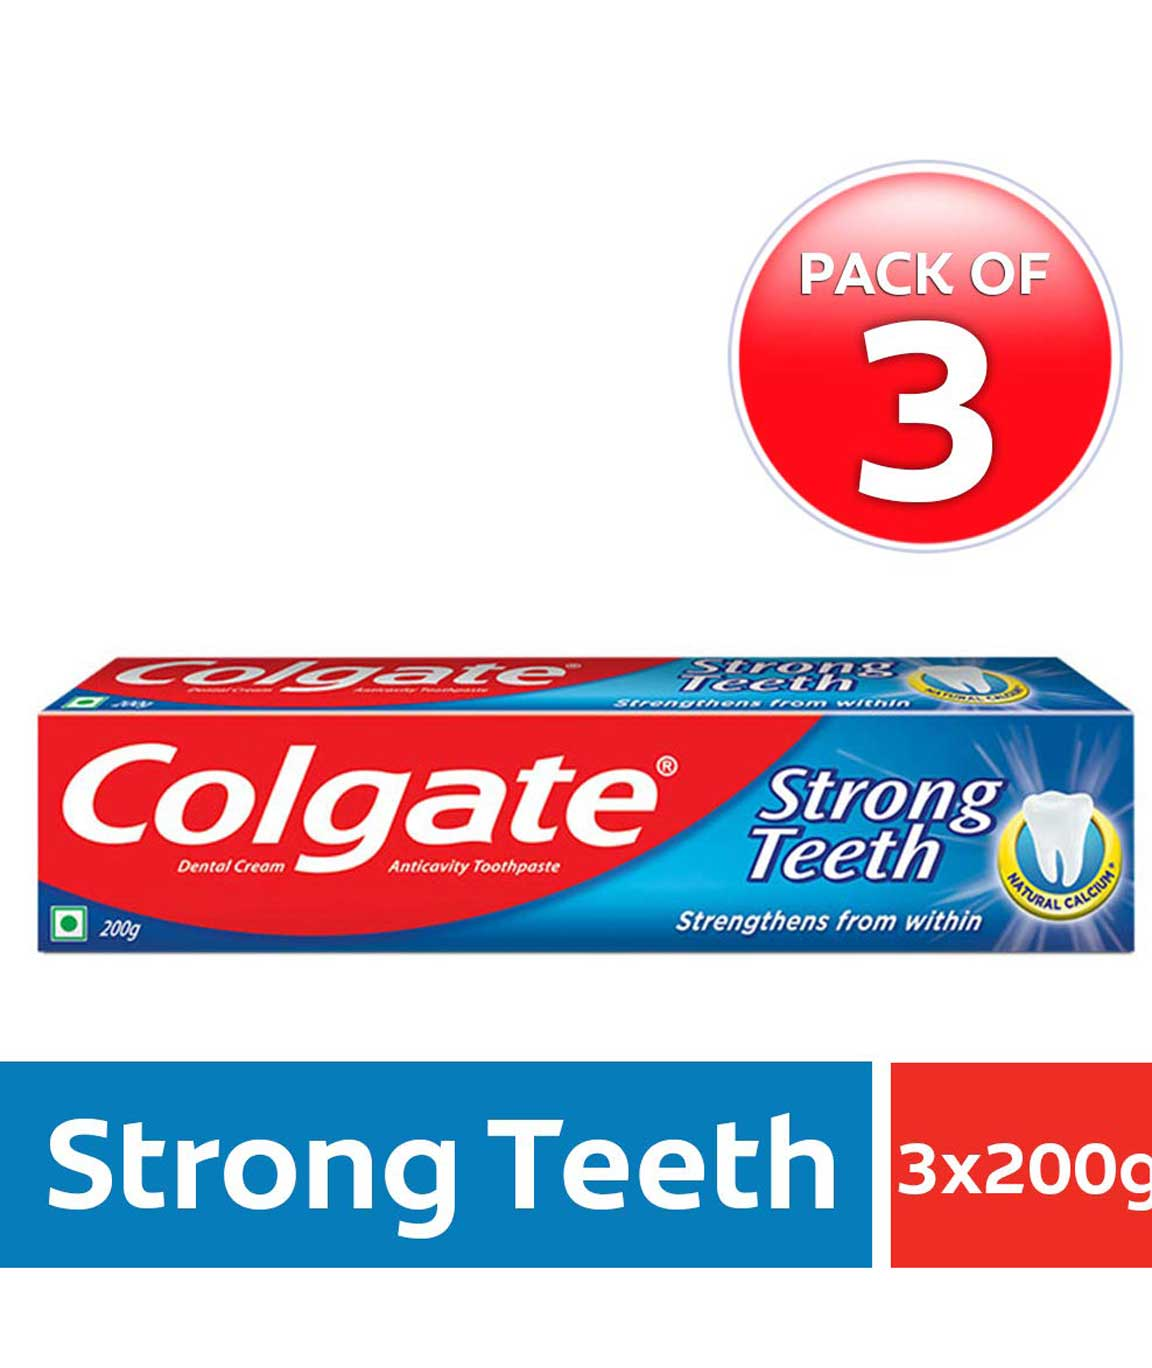 Colgate Strong Teeth Anti-Cavity Toothpaste – 200g (Pack of 3)